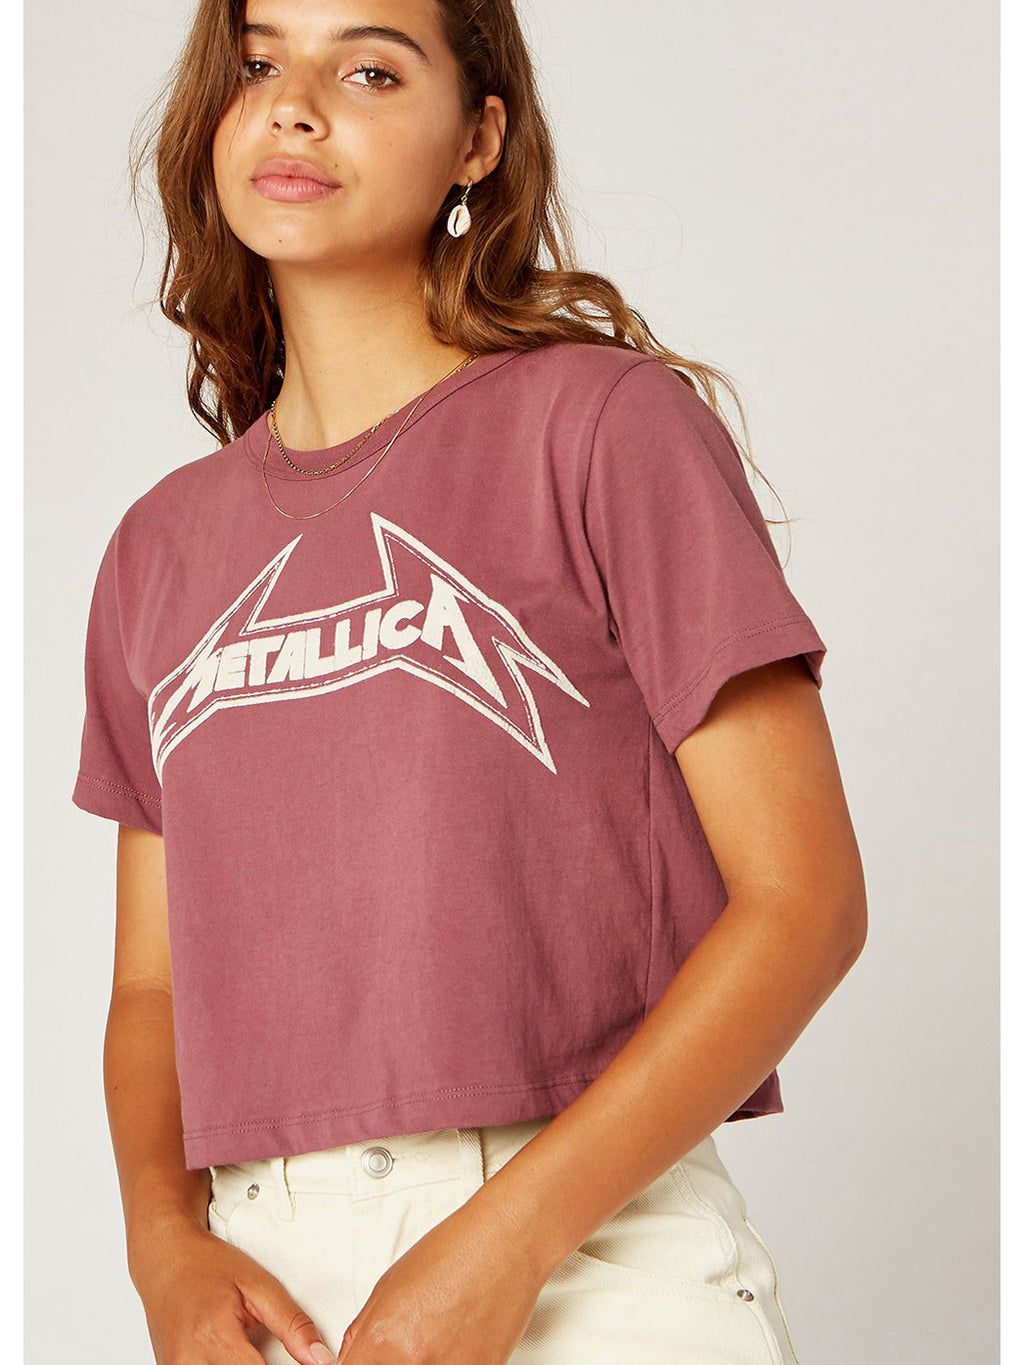 Metallica Young Metal Rebel Crop Tee - Mauve